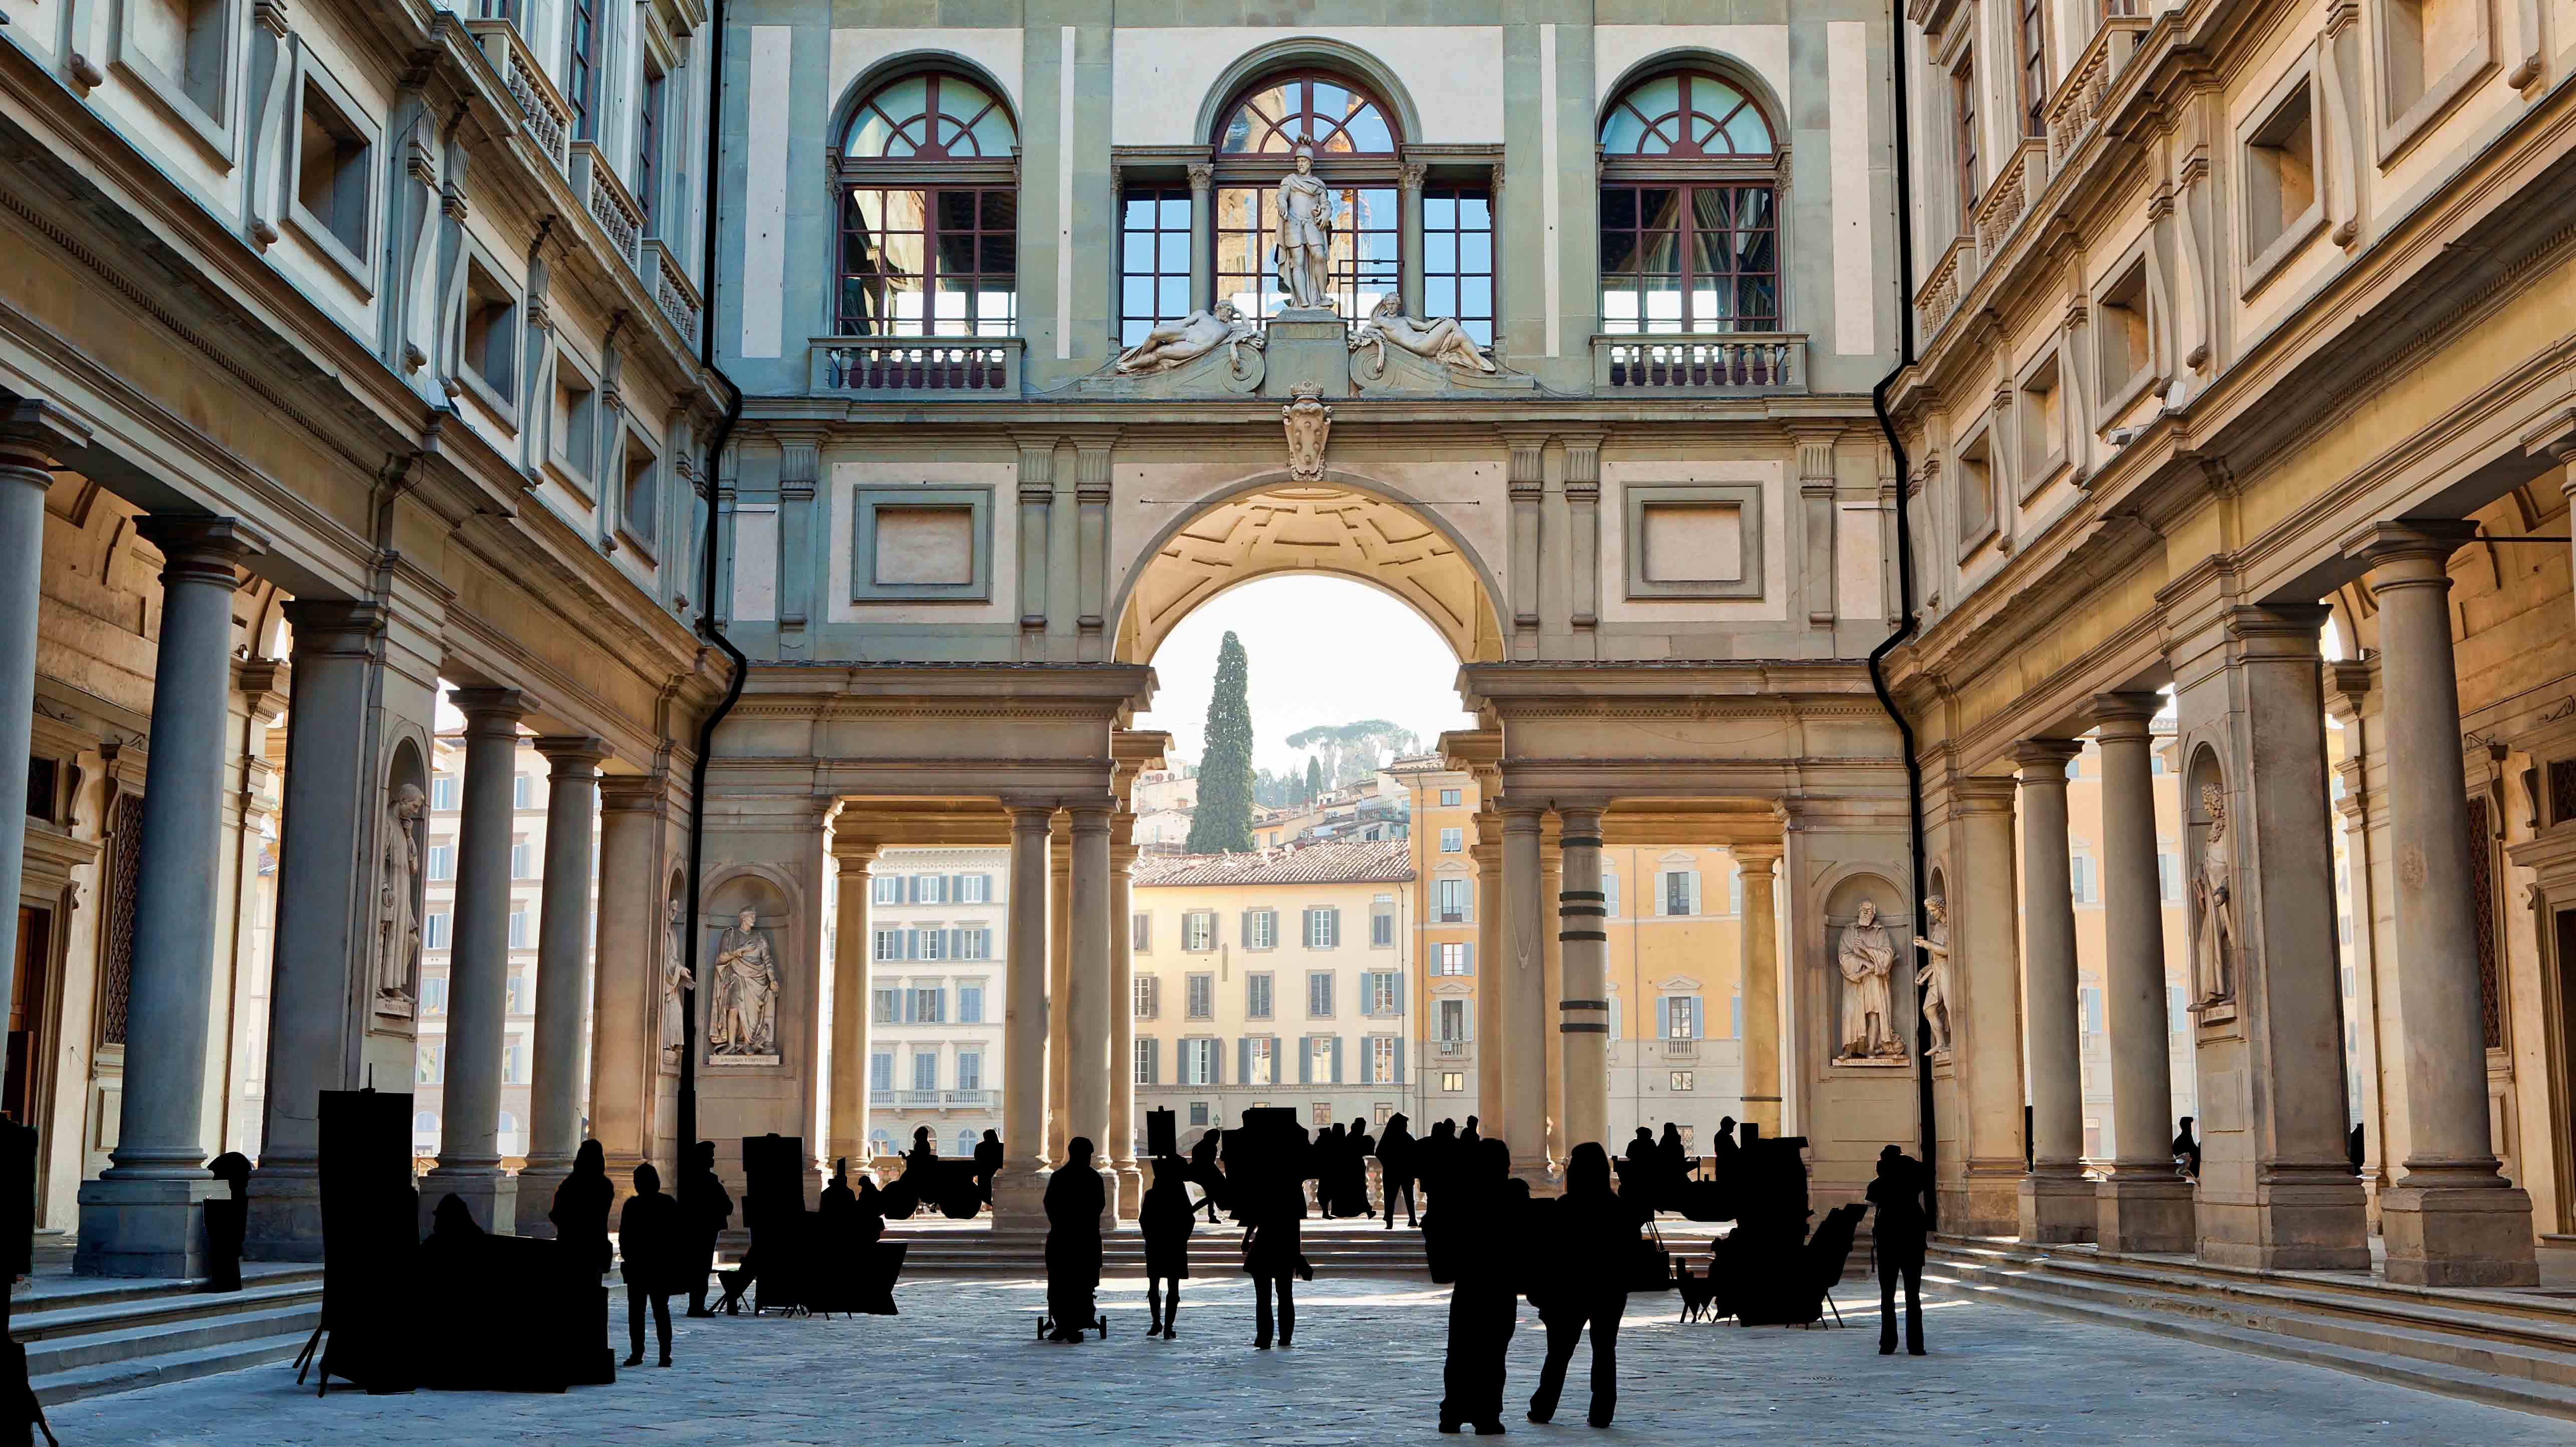 If you're looking to see some of the world's best art, a great thing to do in Italy is visit Uffizi